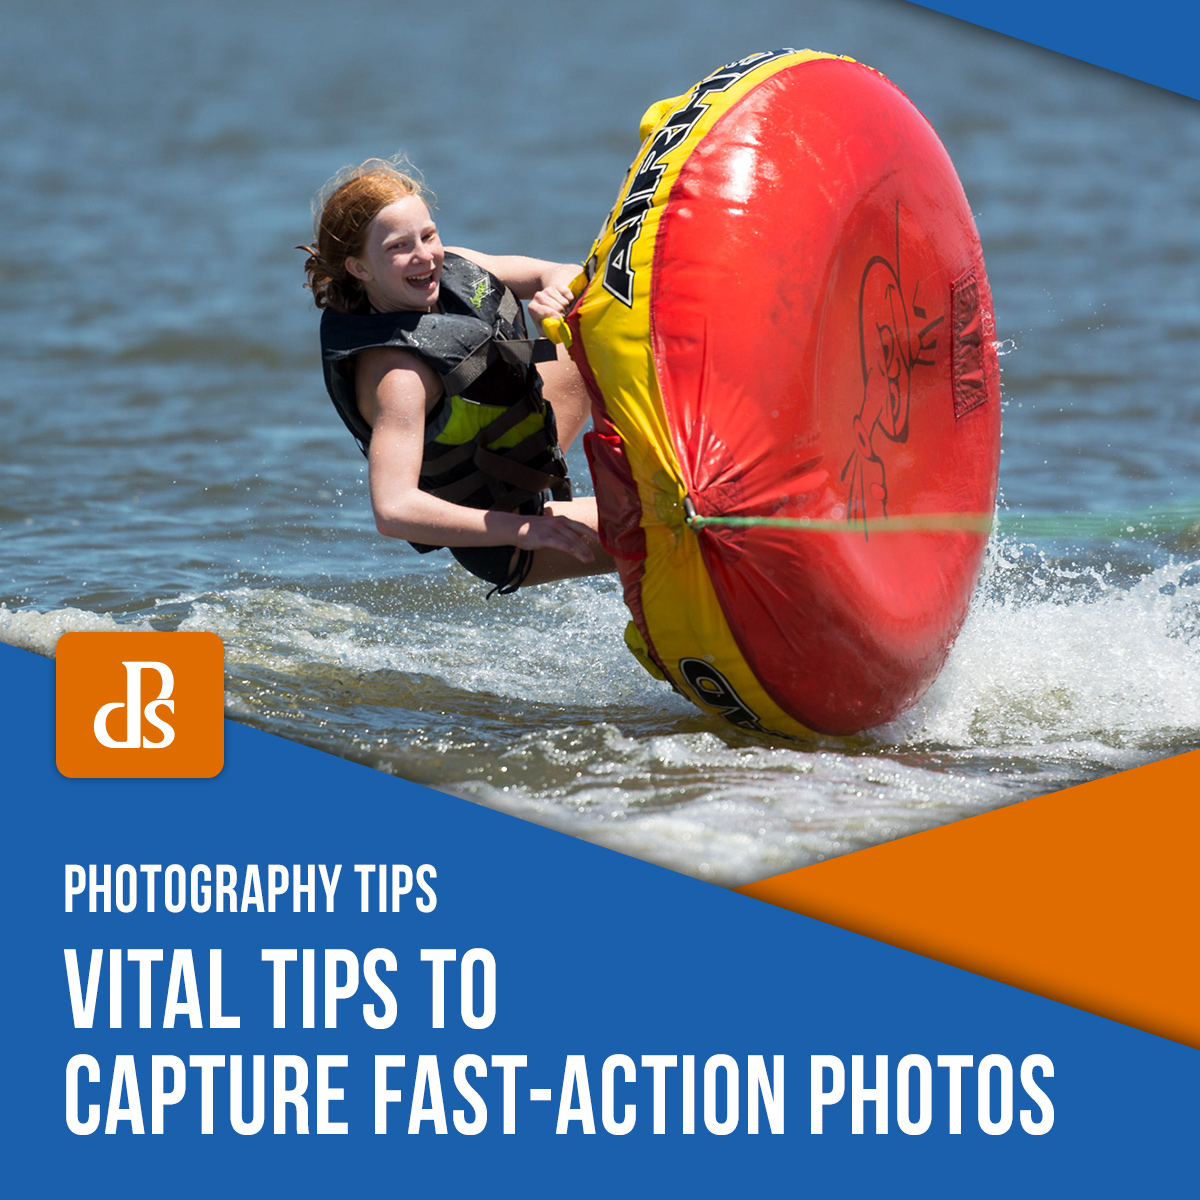 capture-fast-action-photos-tips